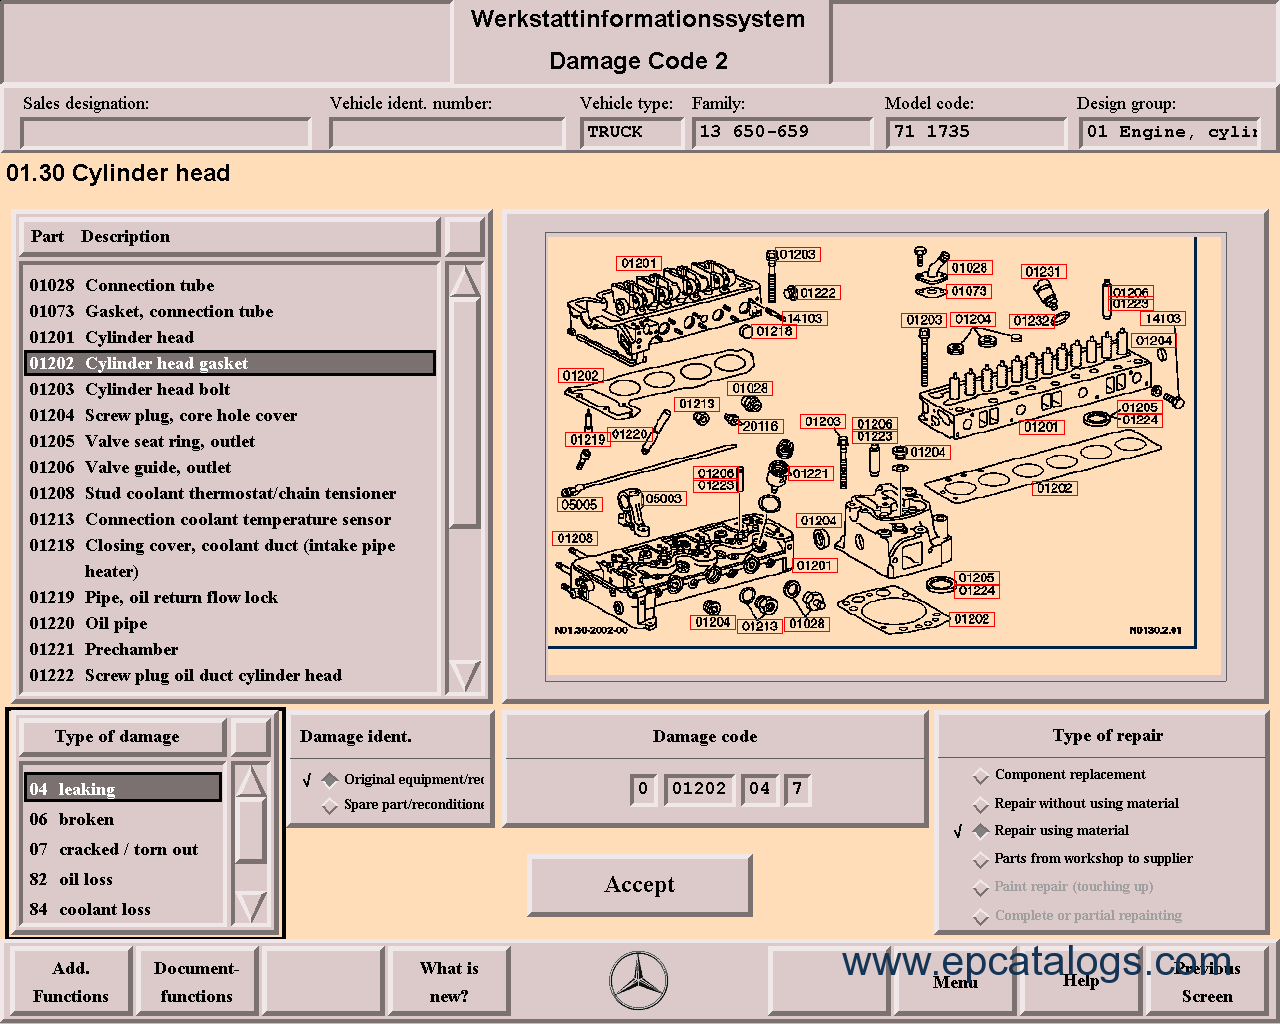 Mercedes Wis Asra Technical Information System